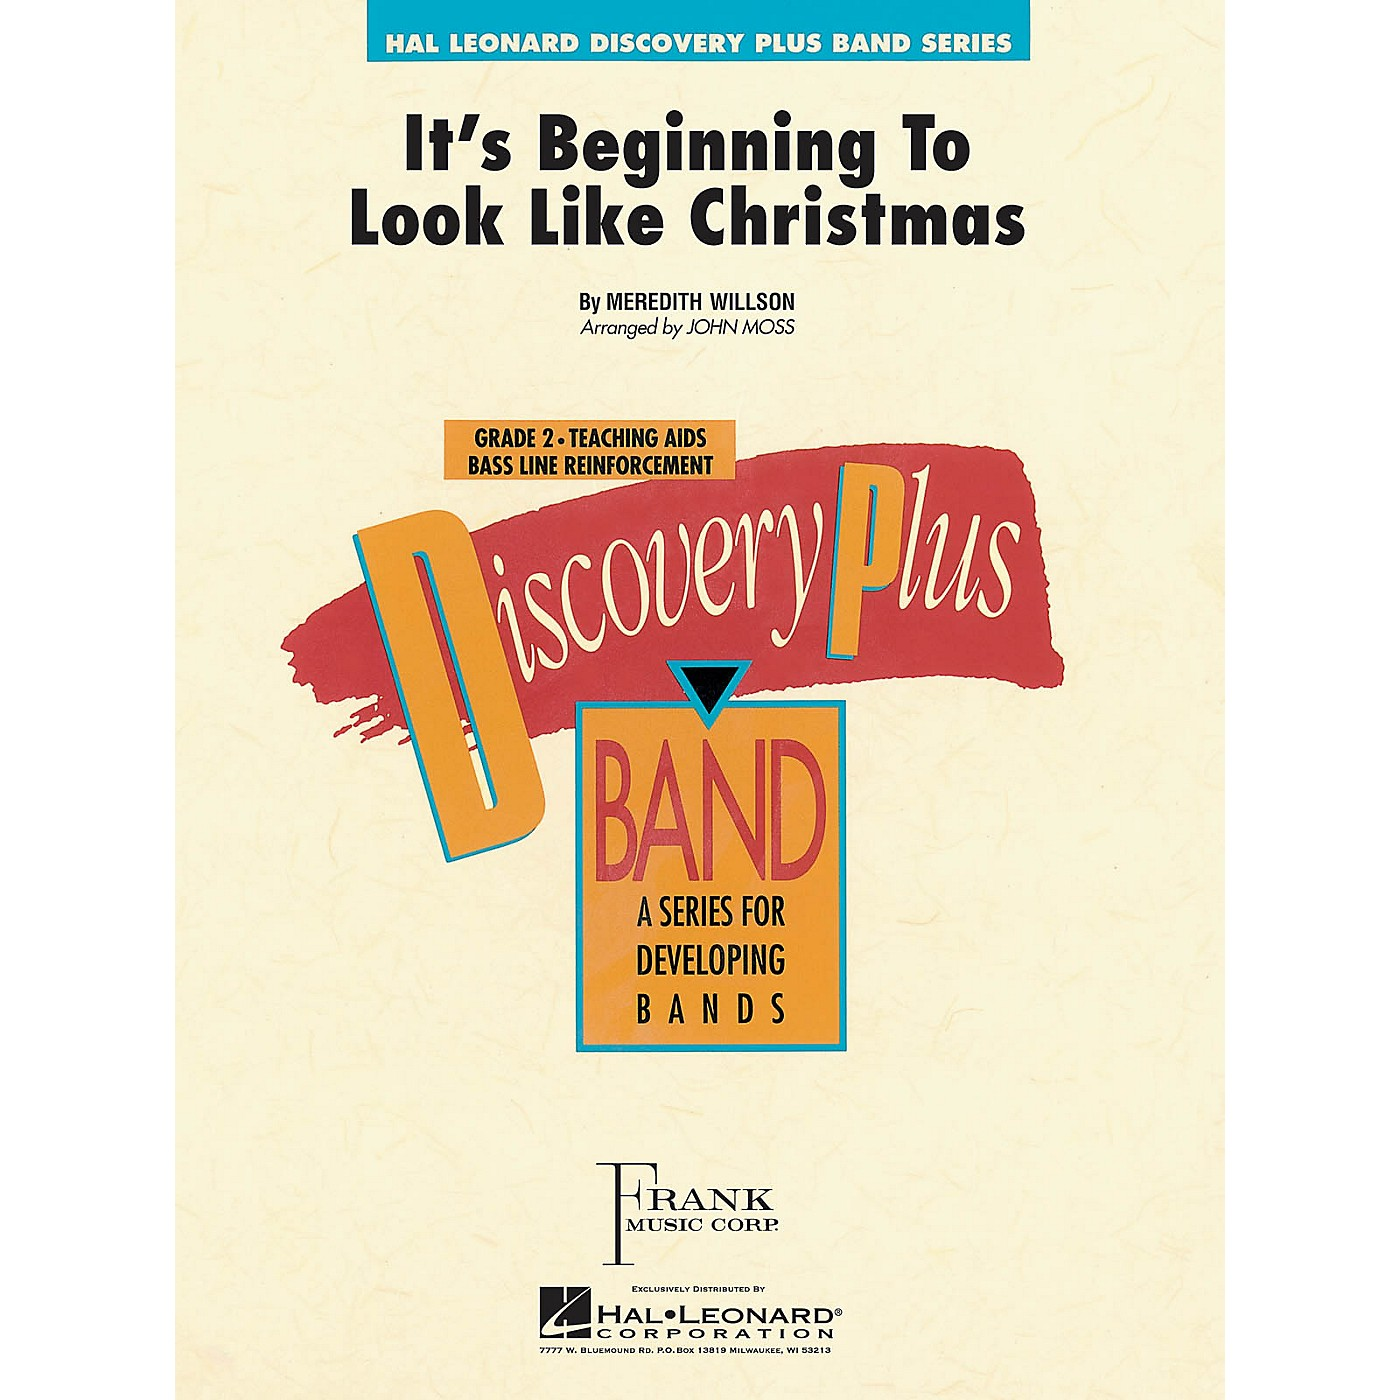 Hal Leonard It's Beginning to Look Like Christmas - Discovery Plus Concert Band Series Level 2 arranged by John Moss thumbnail